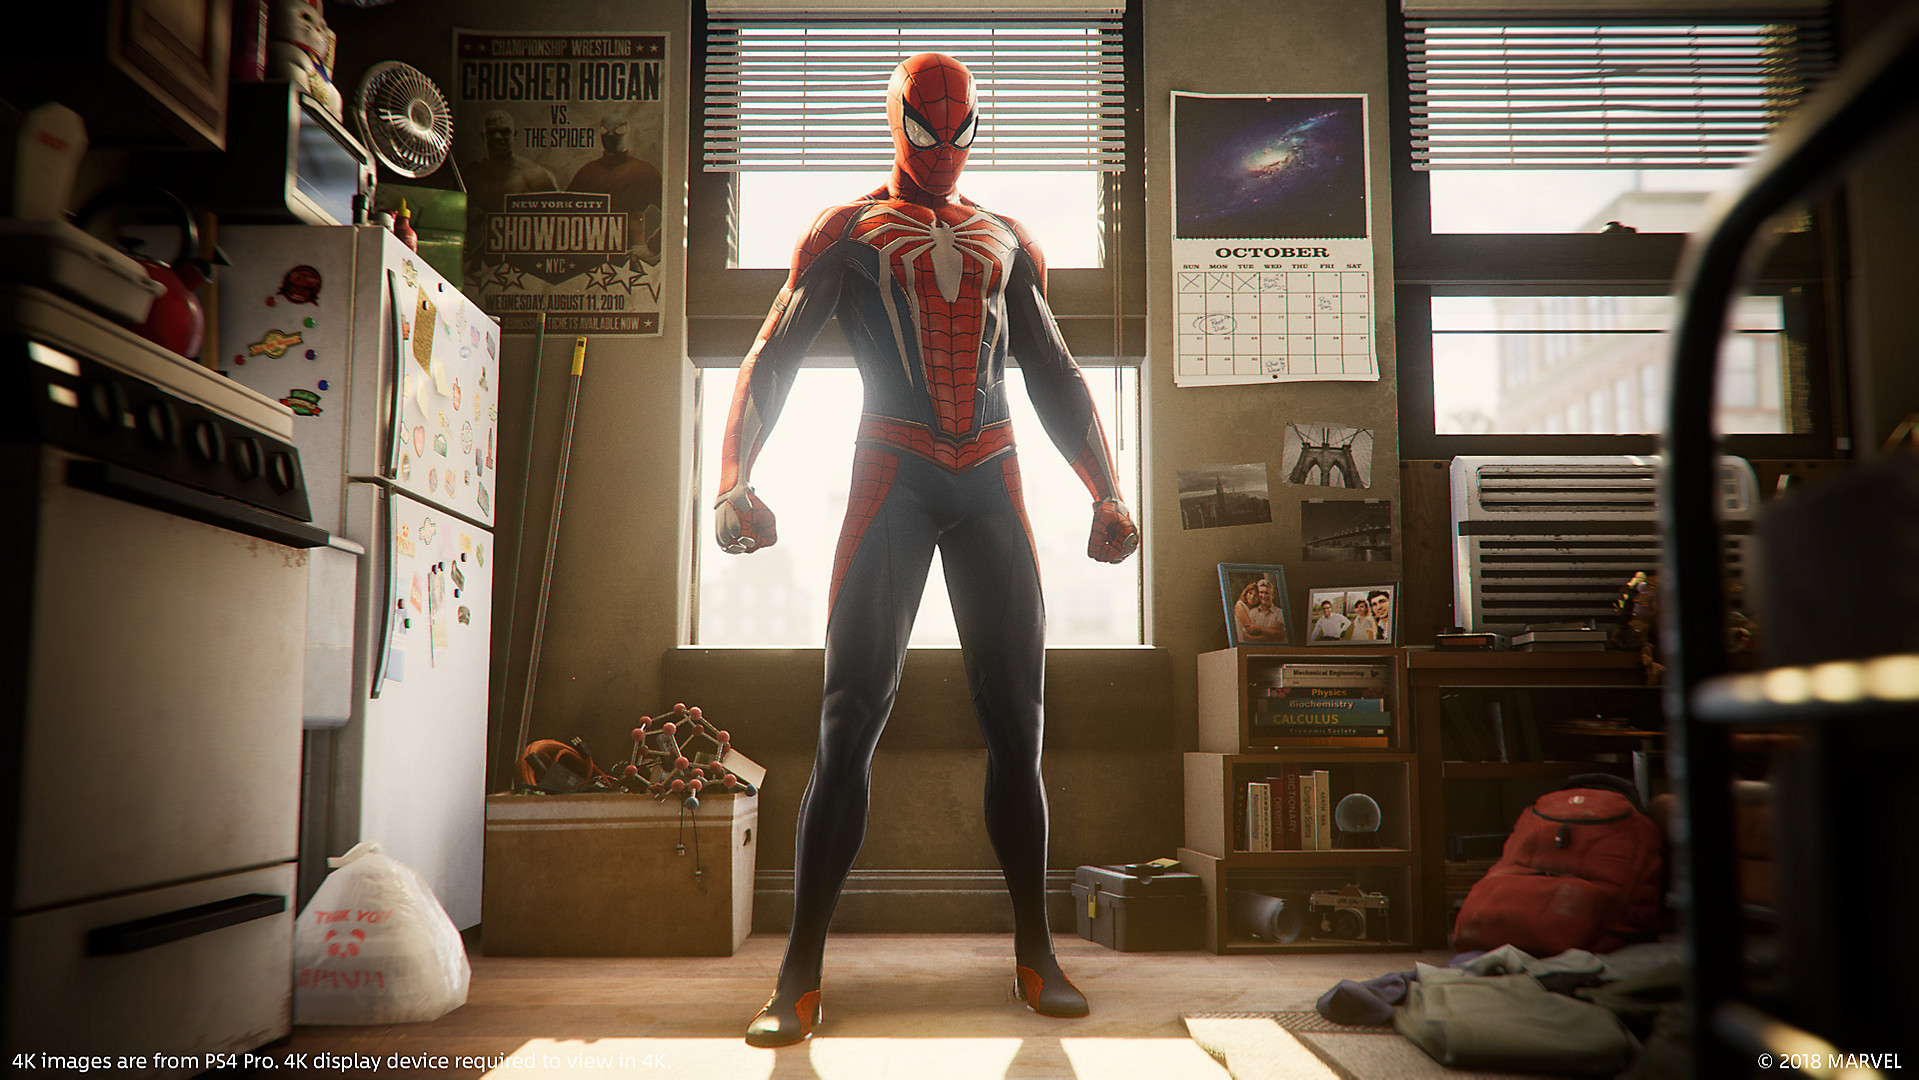 Spider-Man PS4 at E3 image 3